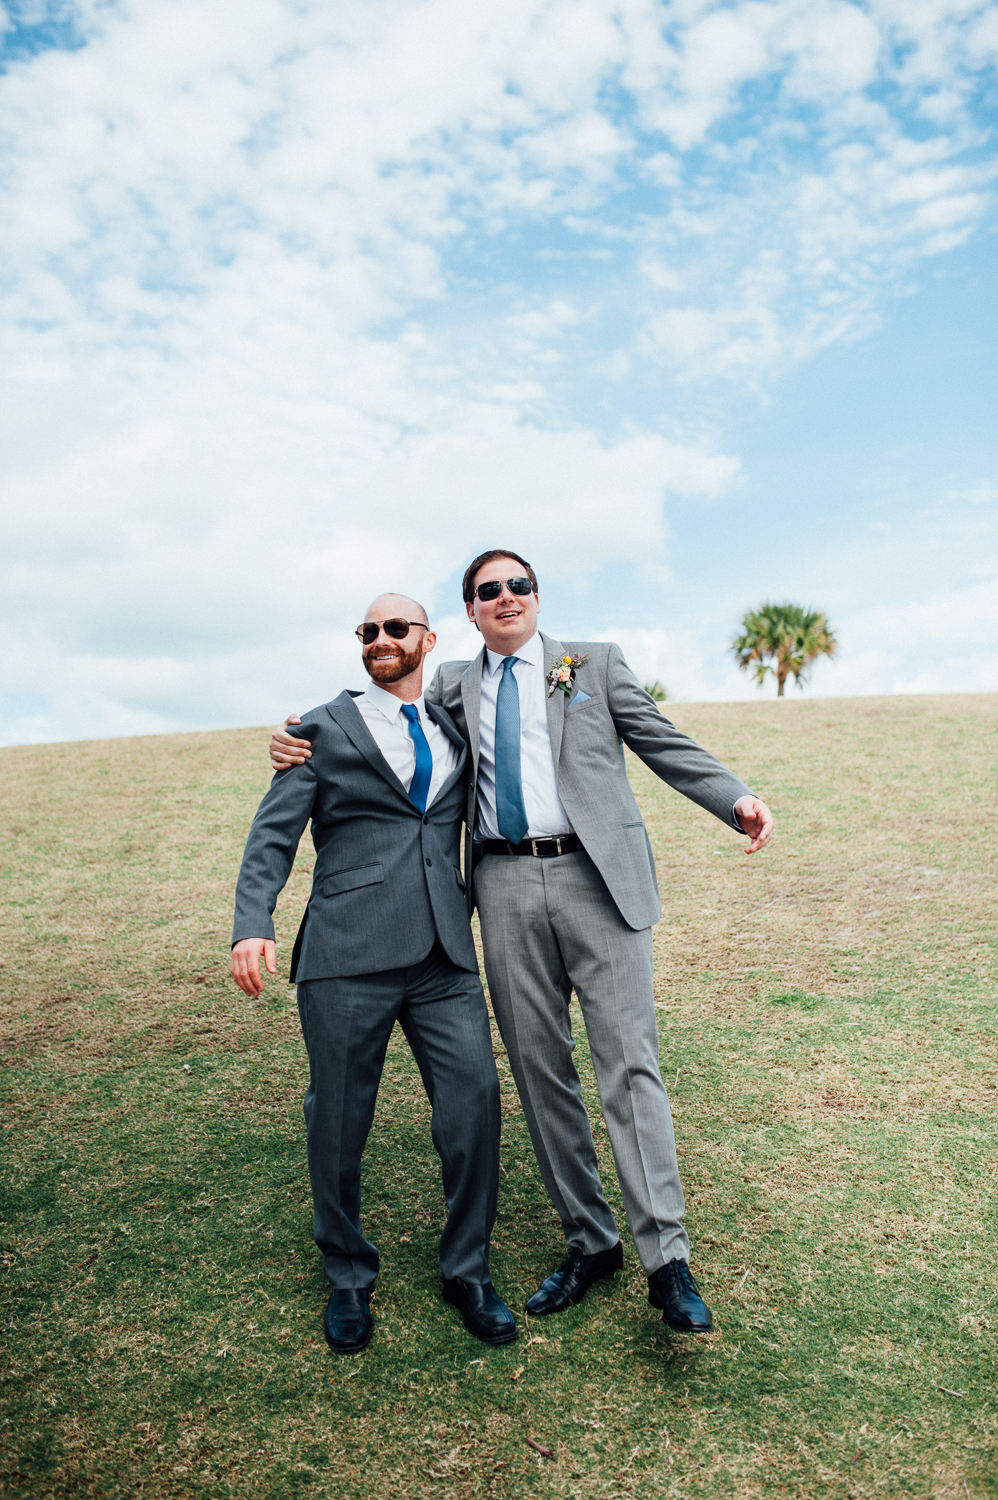 Jessenia Gonzalez Photography-South Point Park-Miami Beach-Wedding-Bridesmaids-groomsmen (16 of 48).jpg